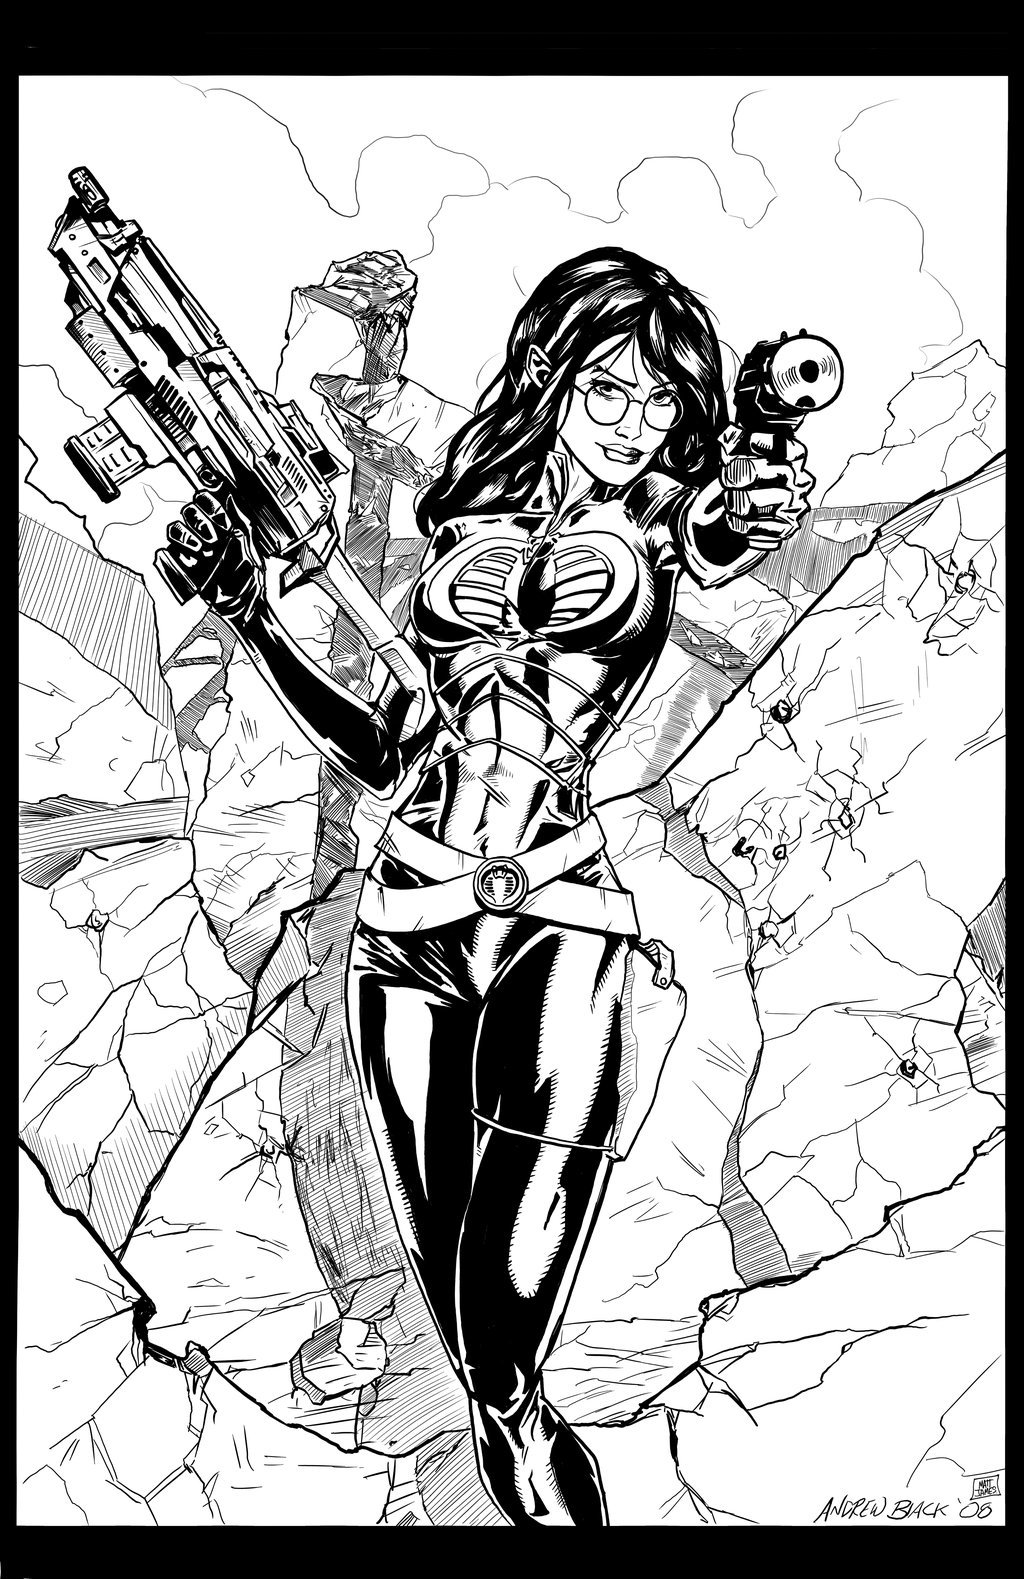 Matt james baroness by mattjamescomicarts d7vlsti